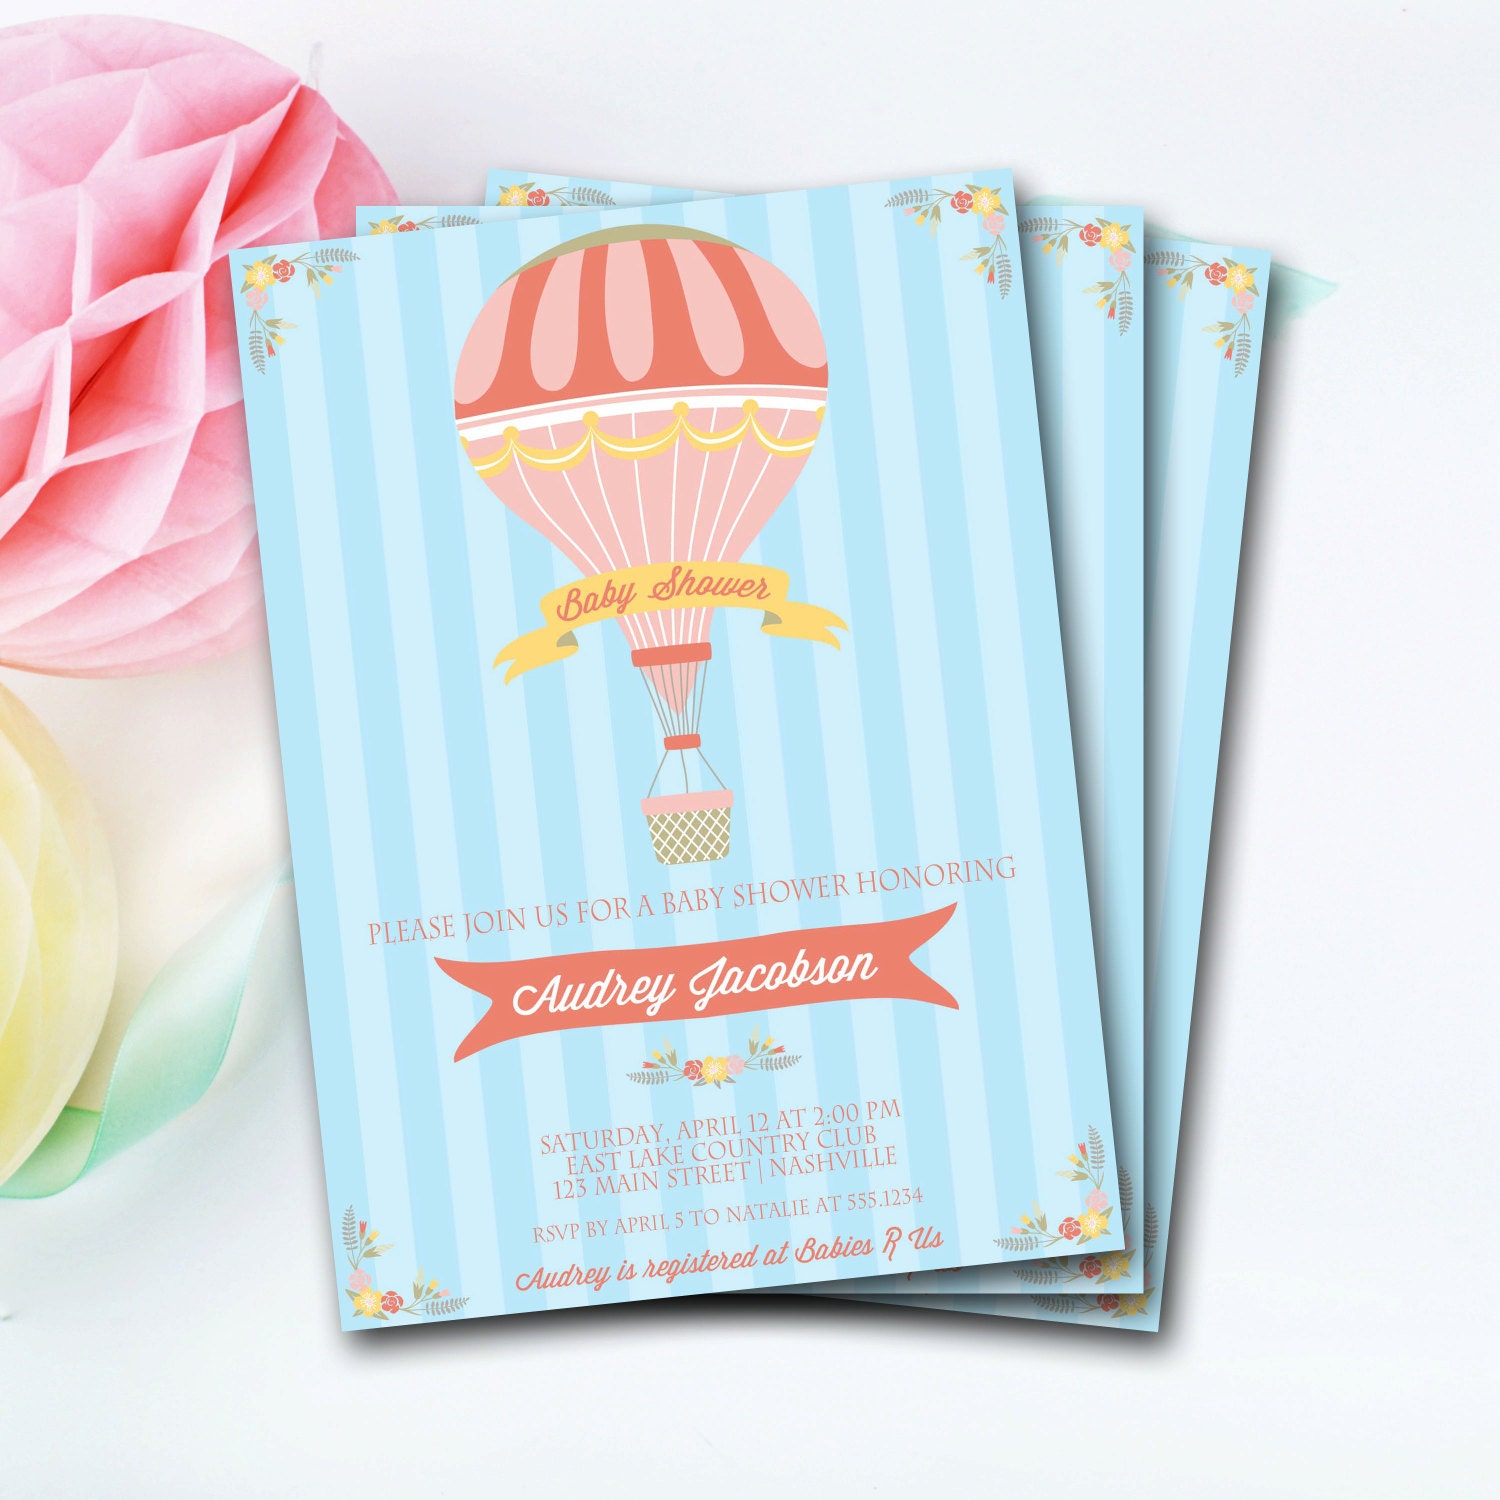 Hot air balloon baby shower invitation hot air balloon invitation hot air balloon baby shower invitation hot air balloon invitation hot air balloon invite vintage baby shower invitation diy printable filmwisefo Image collections